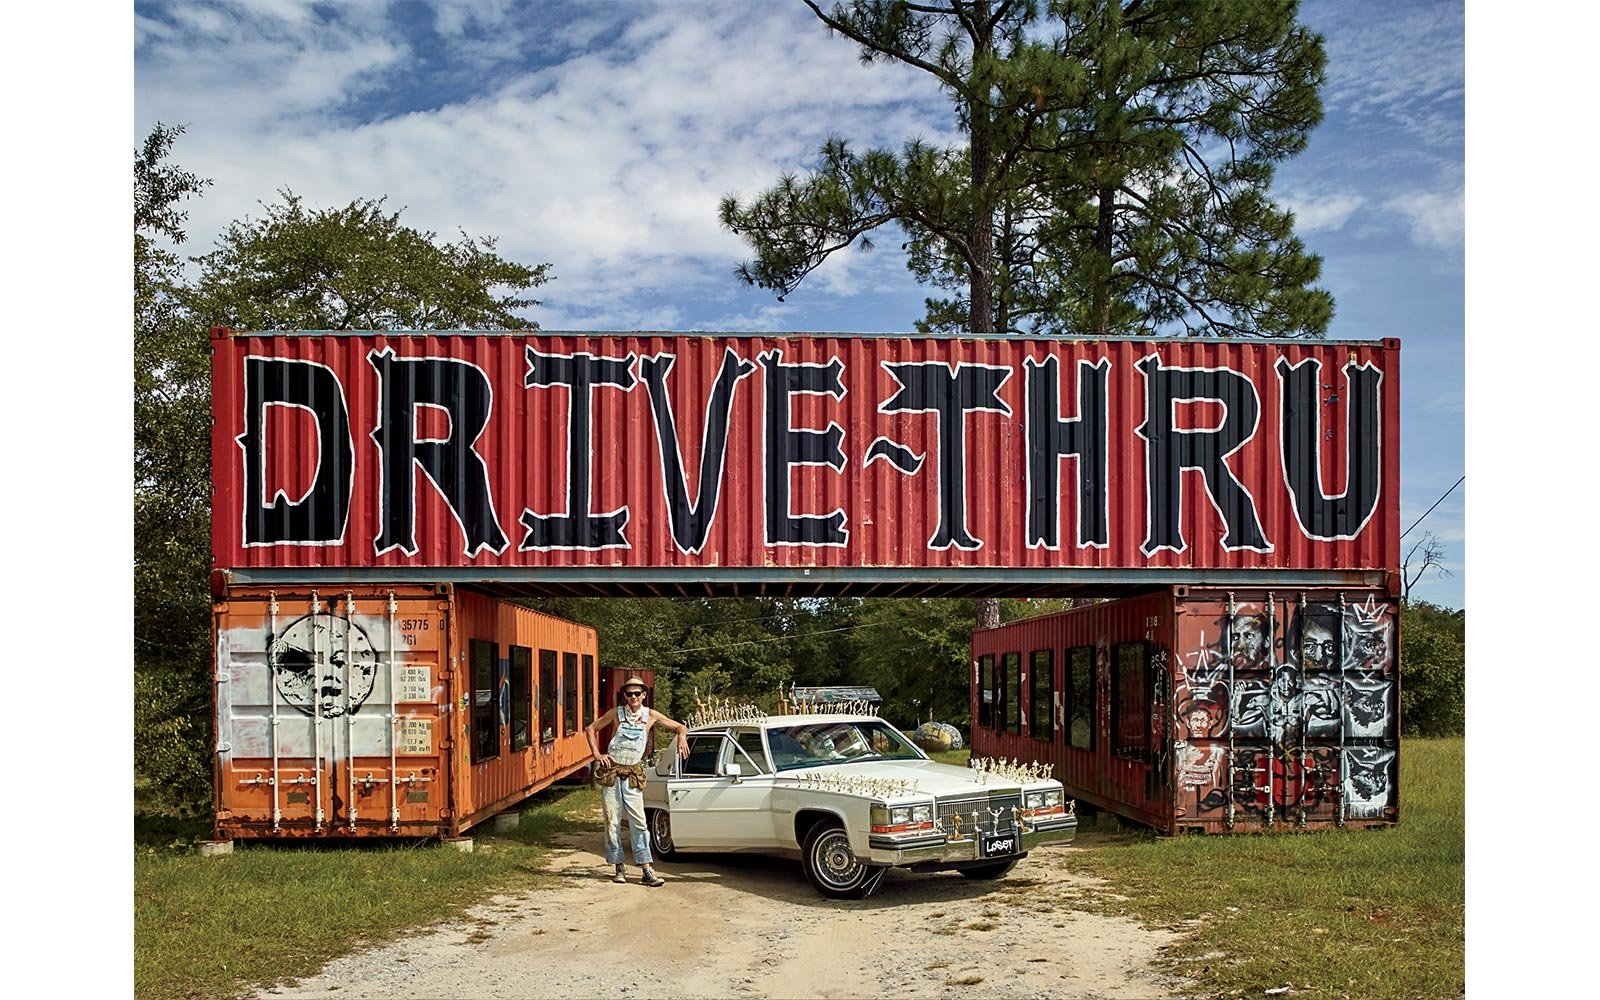 Drive Thru Museum, Seale, Alabama